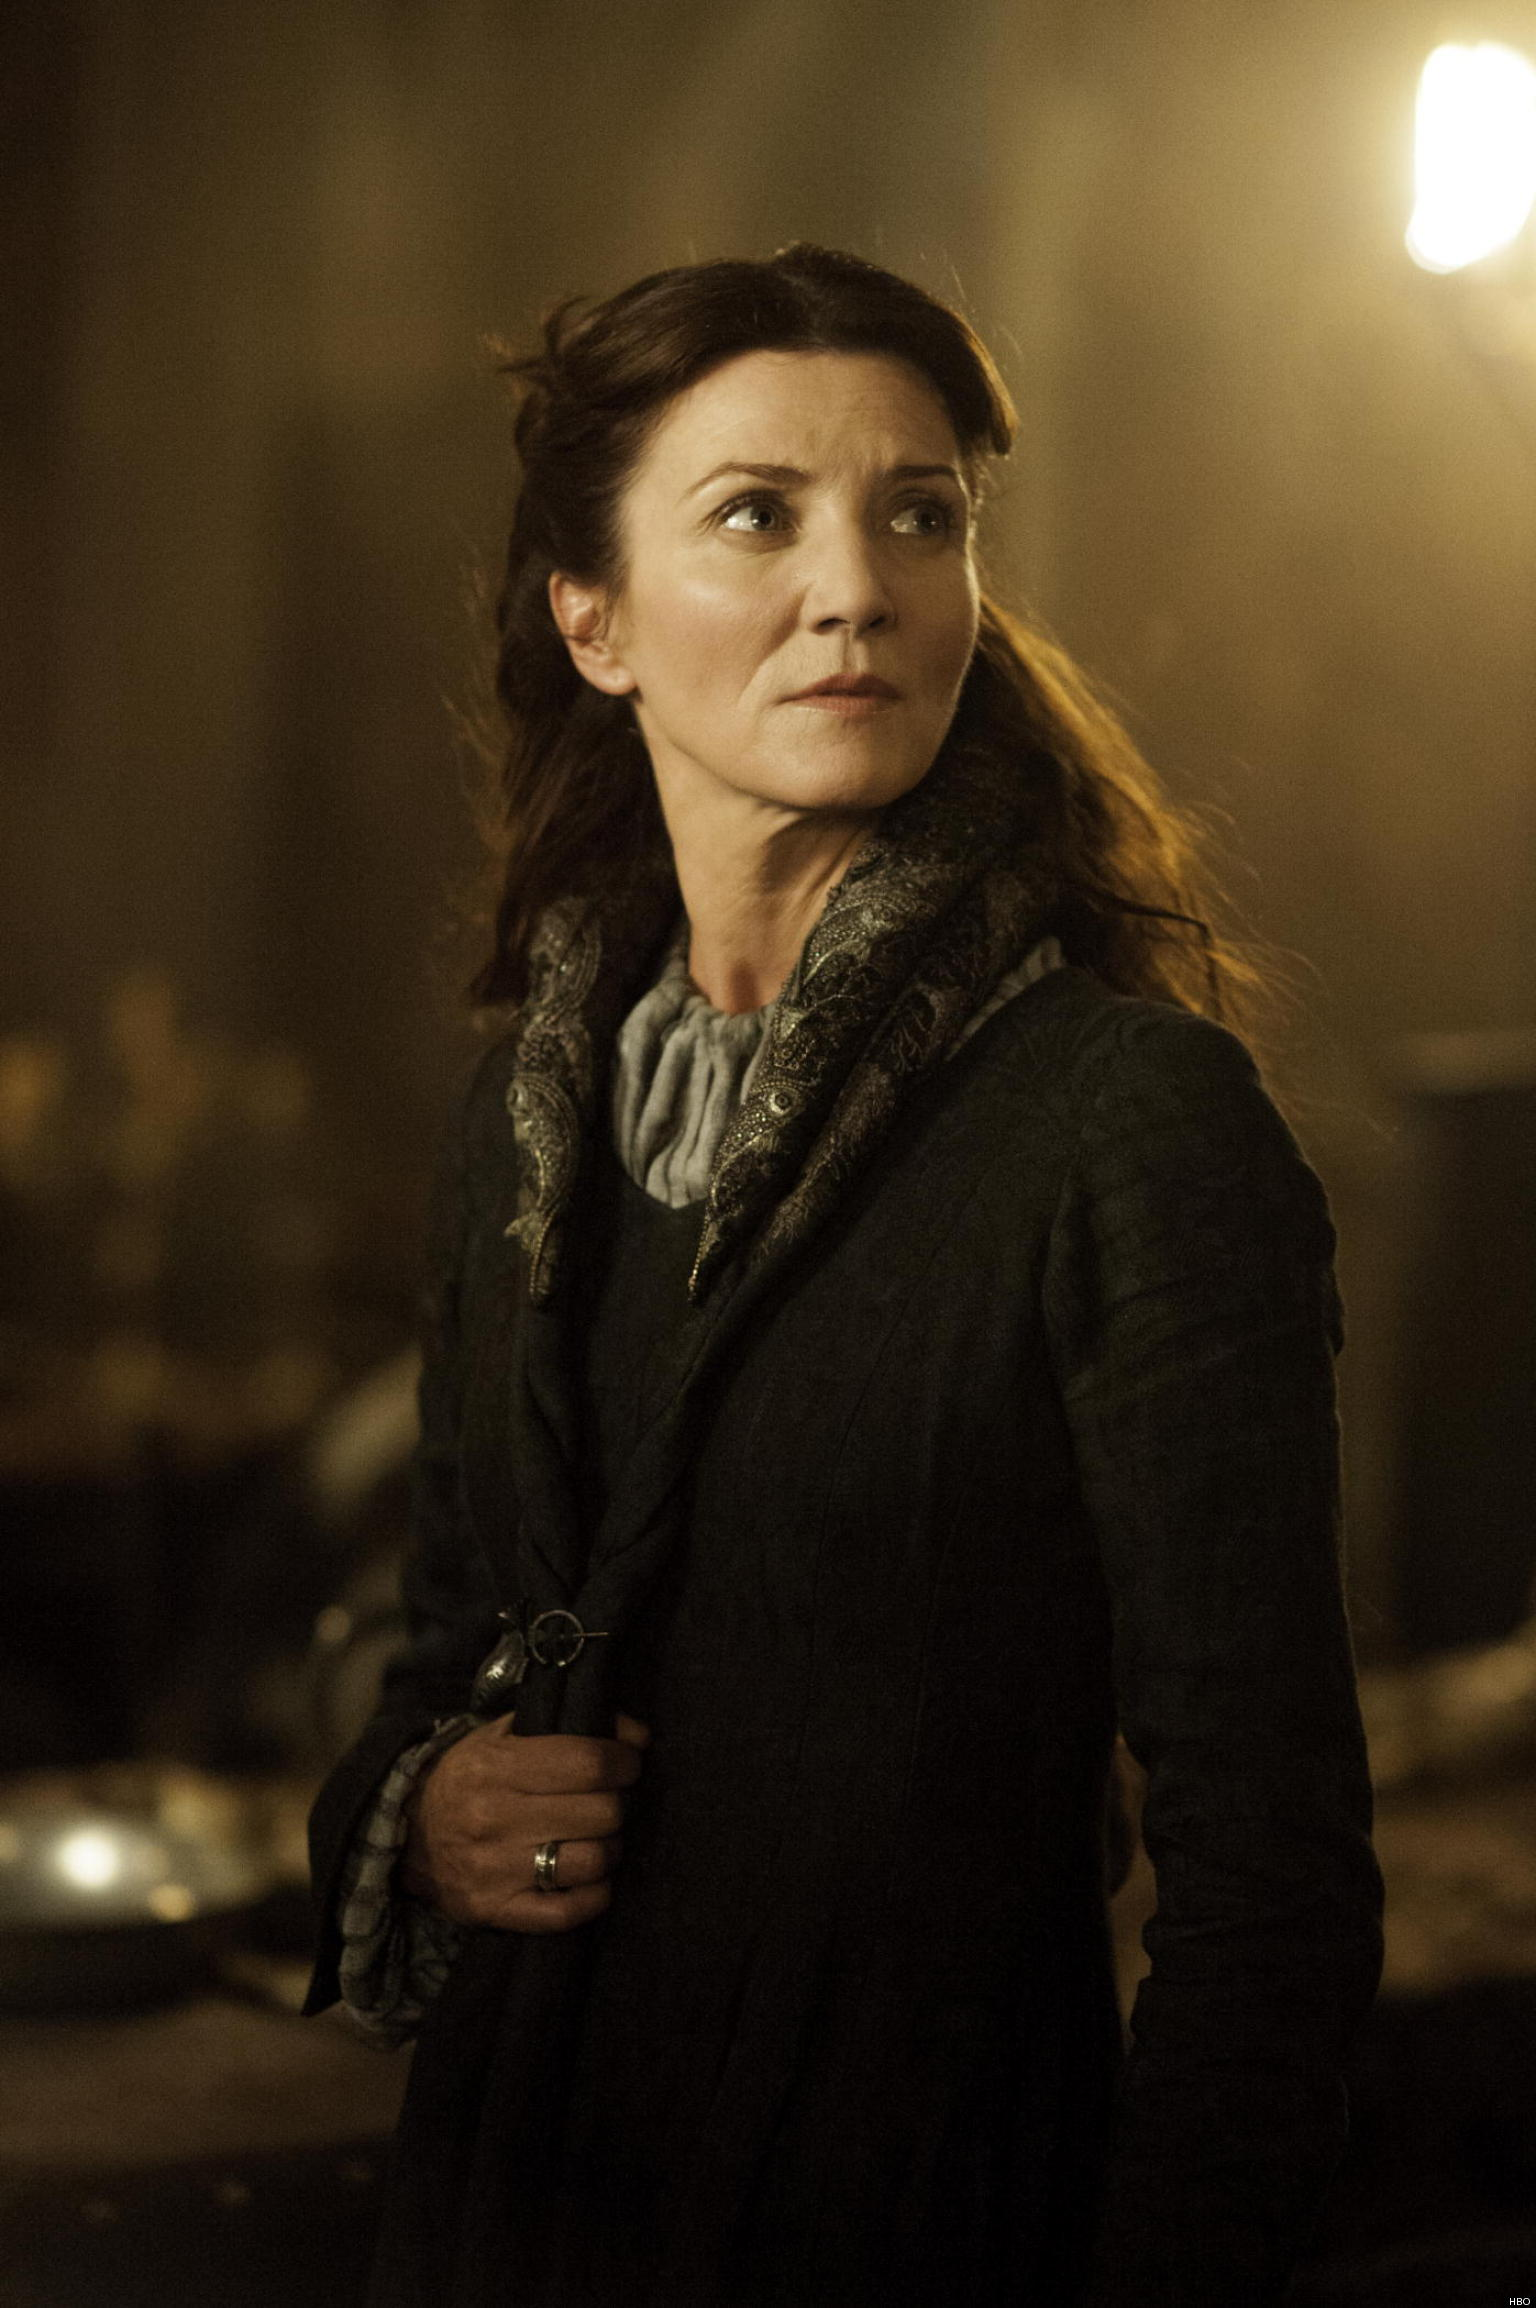 Michelle Fairley – Catelyn Stark – Red Wedding